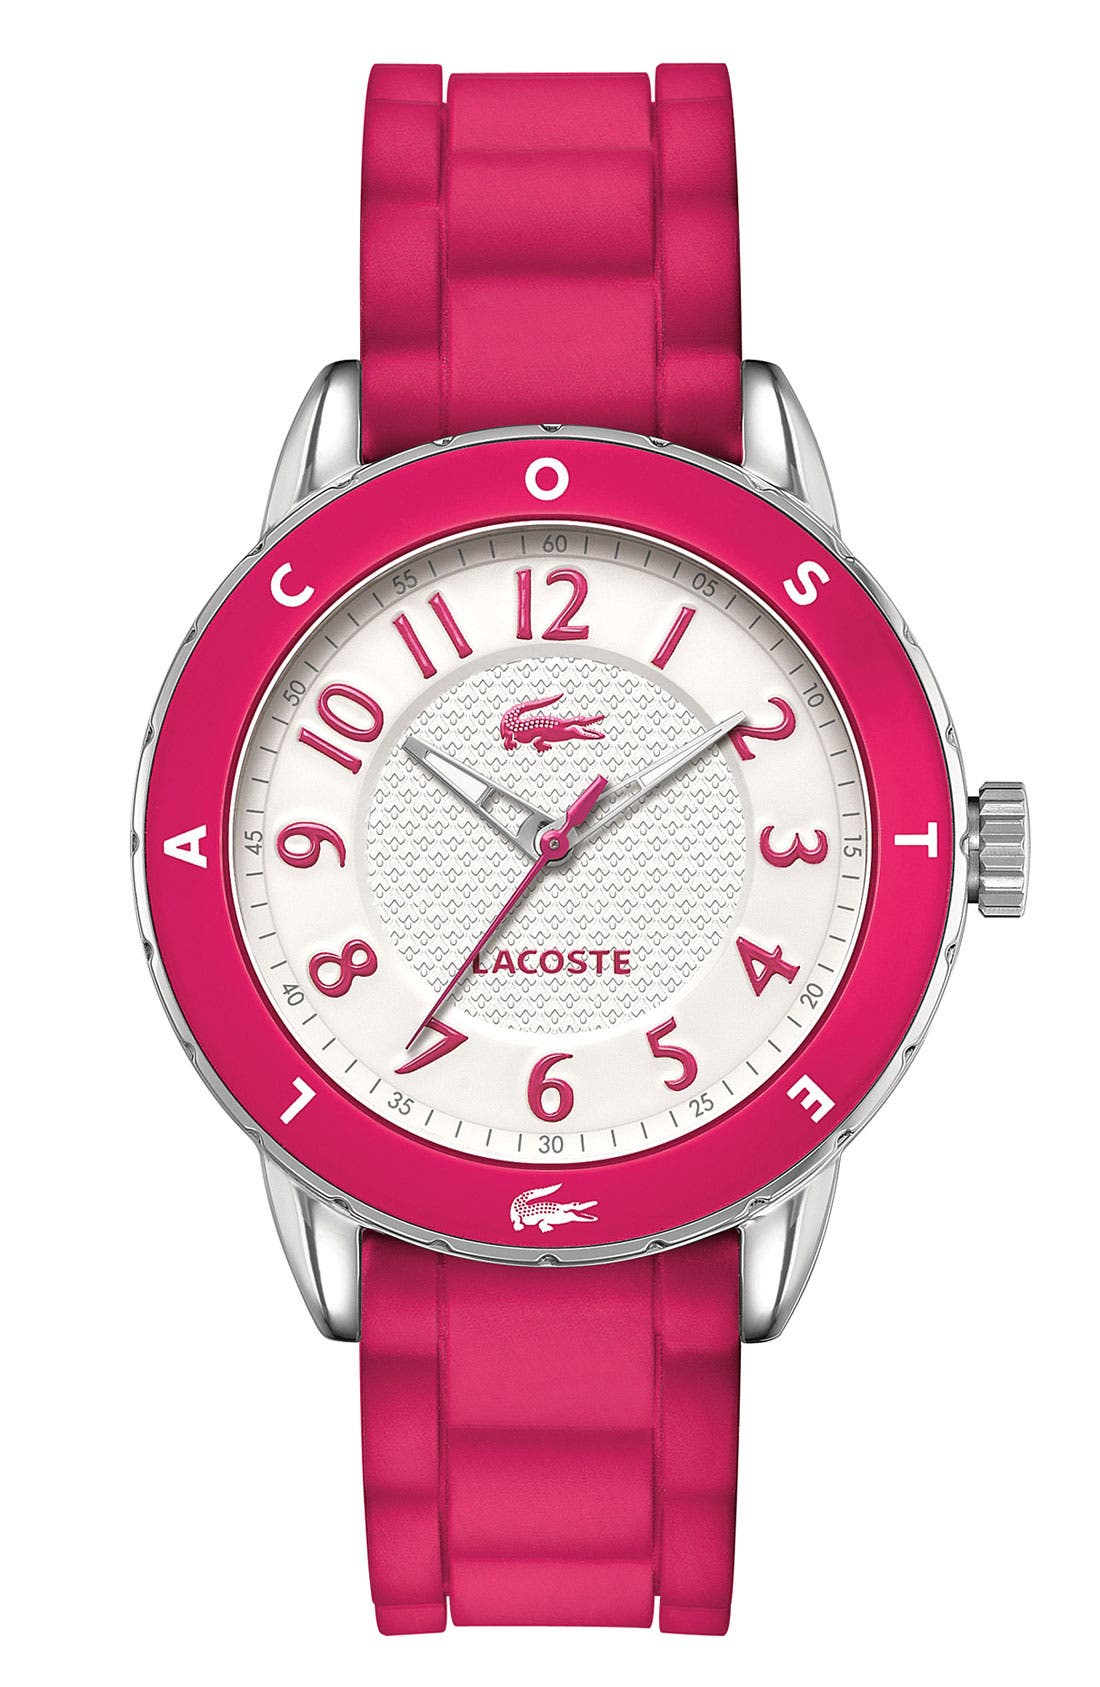 Main Image - Lacoste 'Rio' Silicone Strap Watch, 40mm